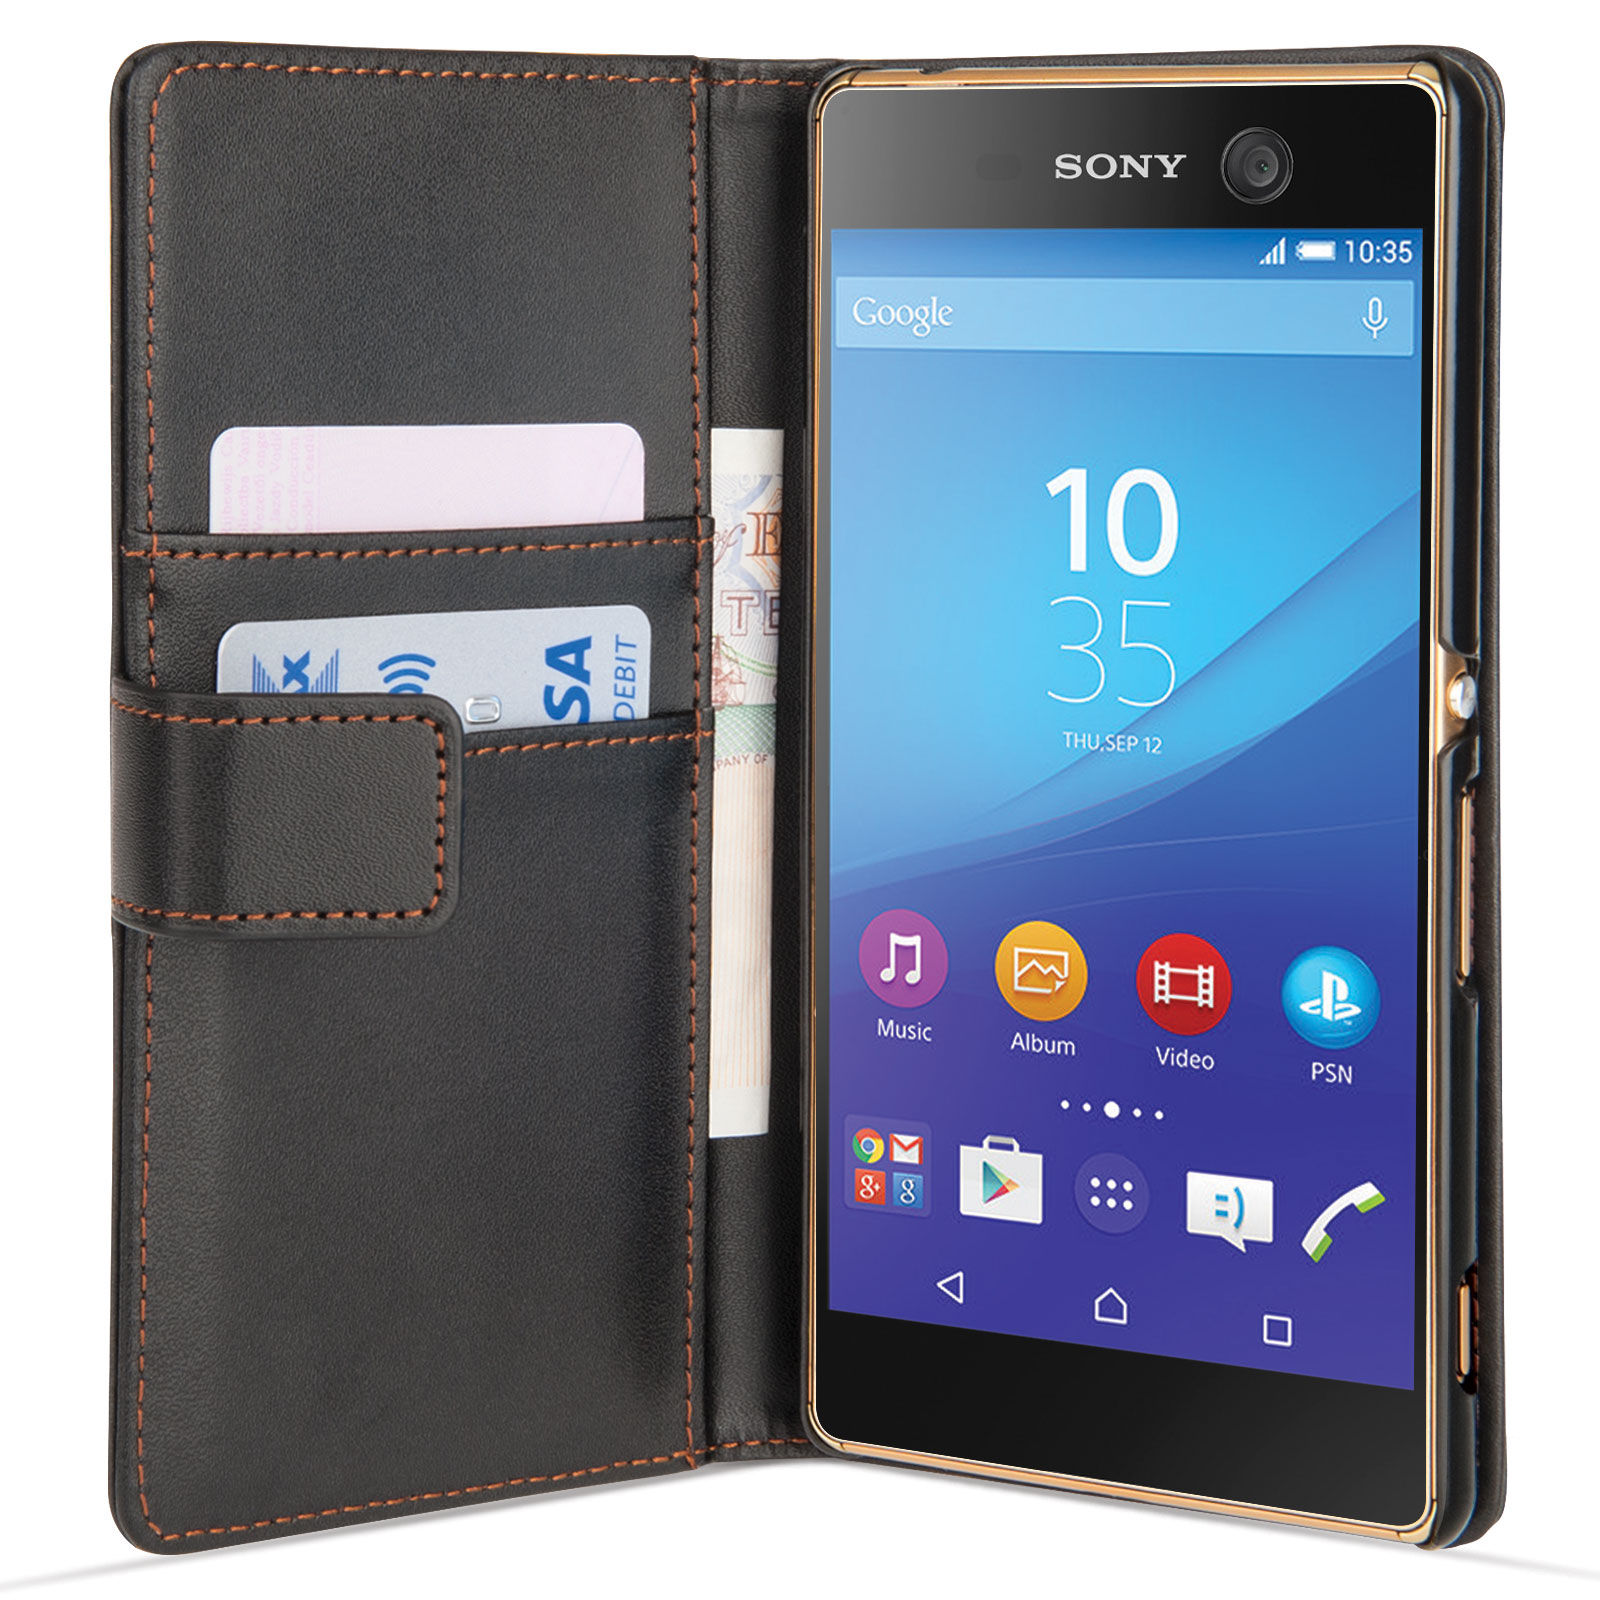 Yousave Accessories Sony Xperia M5 Leather-Effect Wallet Case - Black